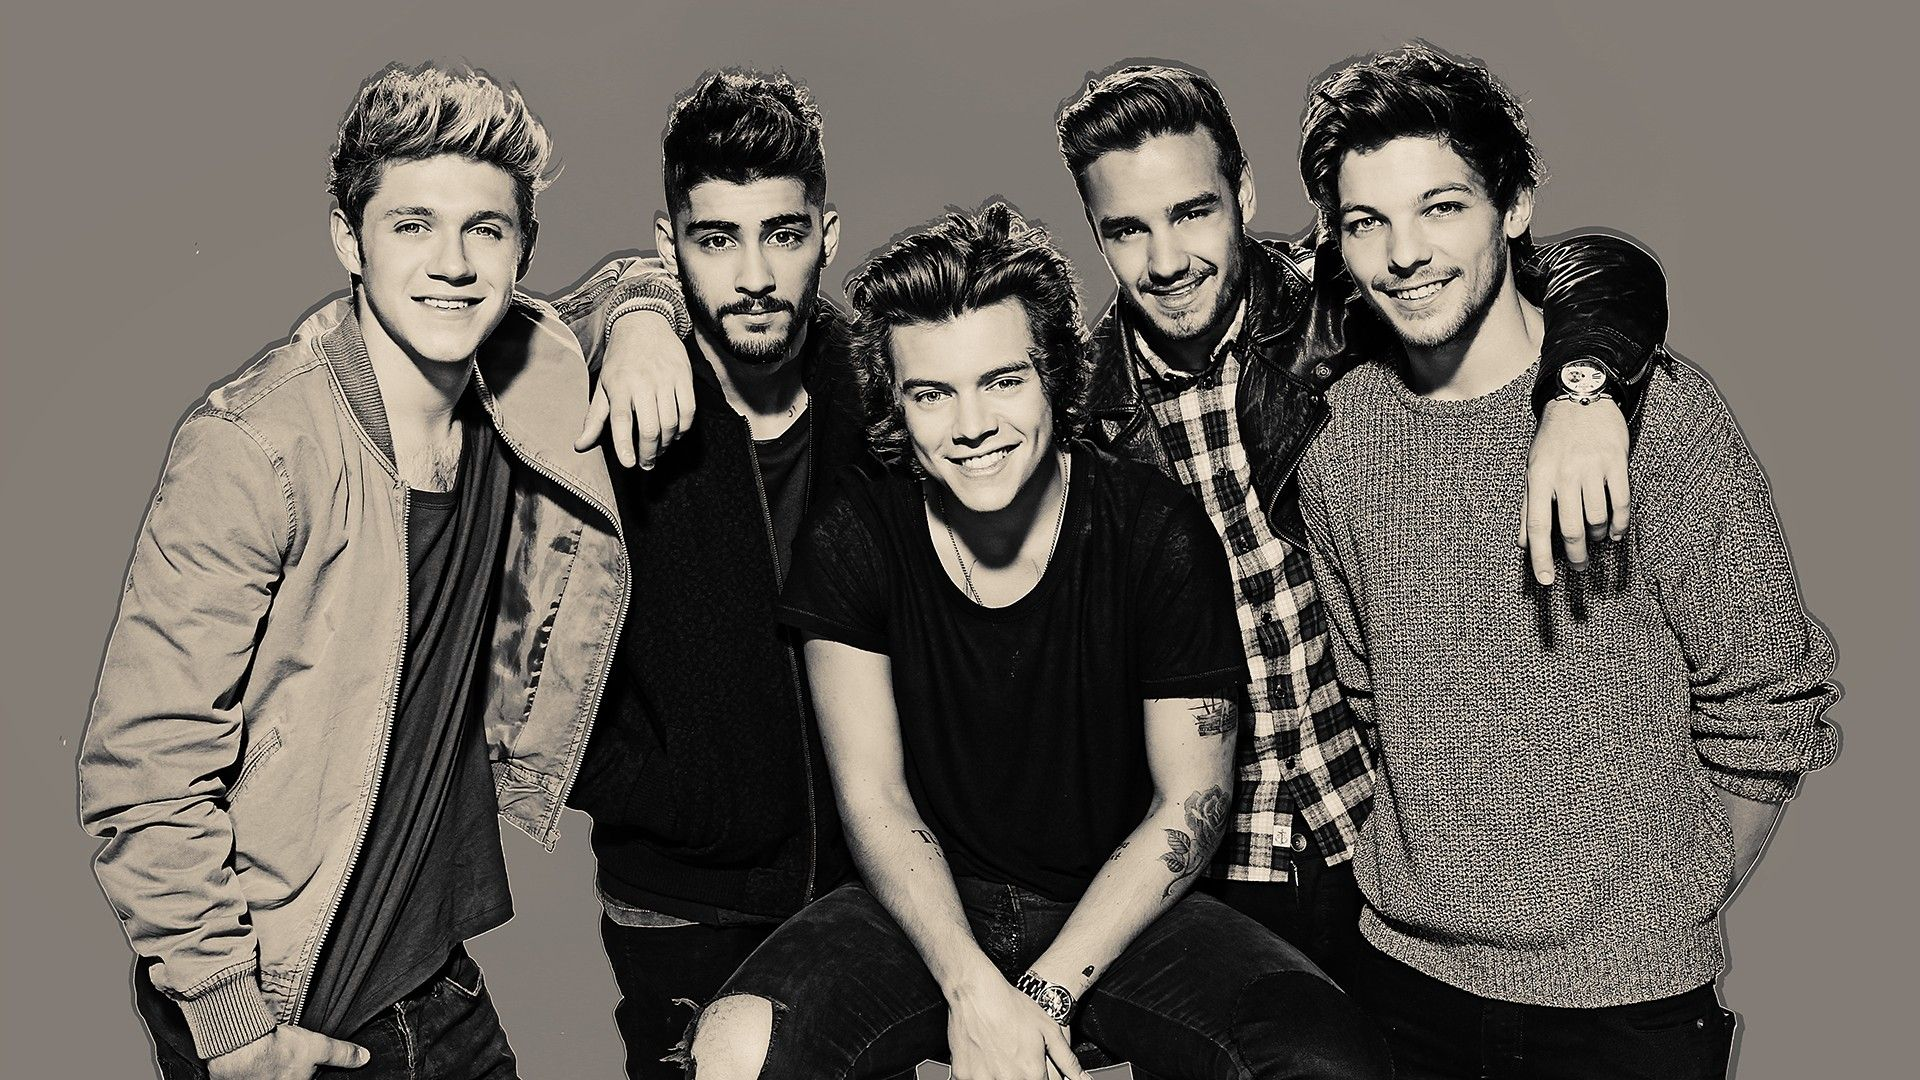 One Direction 2013 For Laptop Wallpaper Full Hd On Wallpaper 1080p Hd One Direction Wallpaper One Direction Collage Laptop Wallpaper